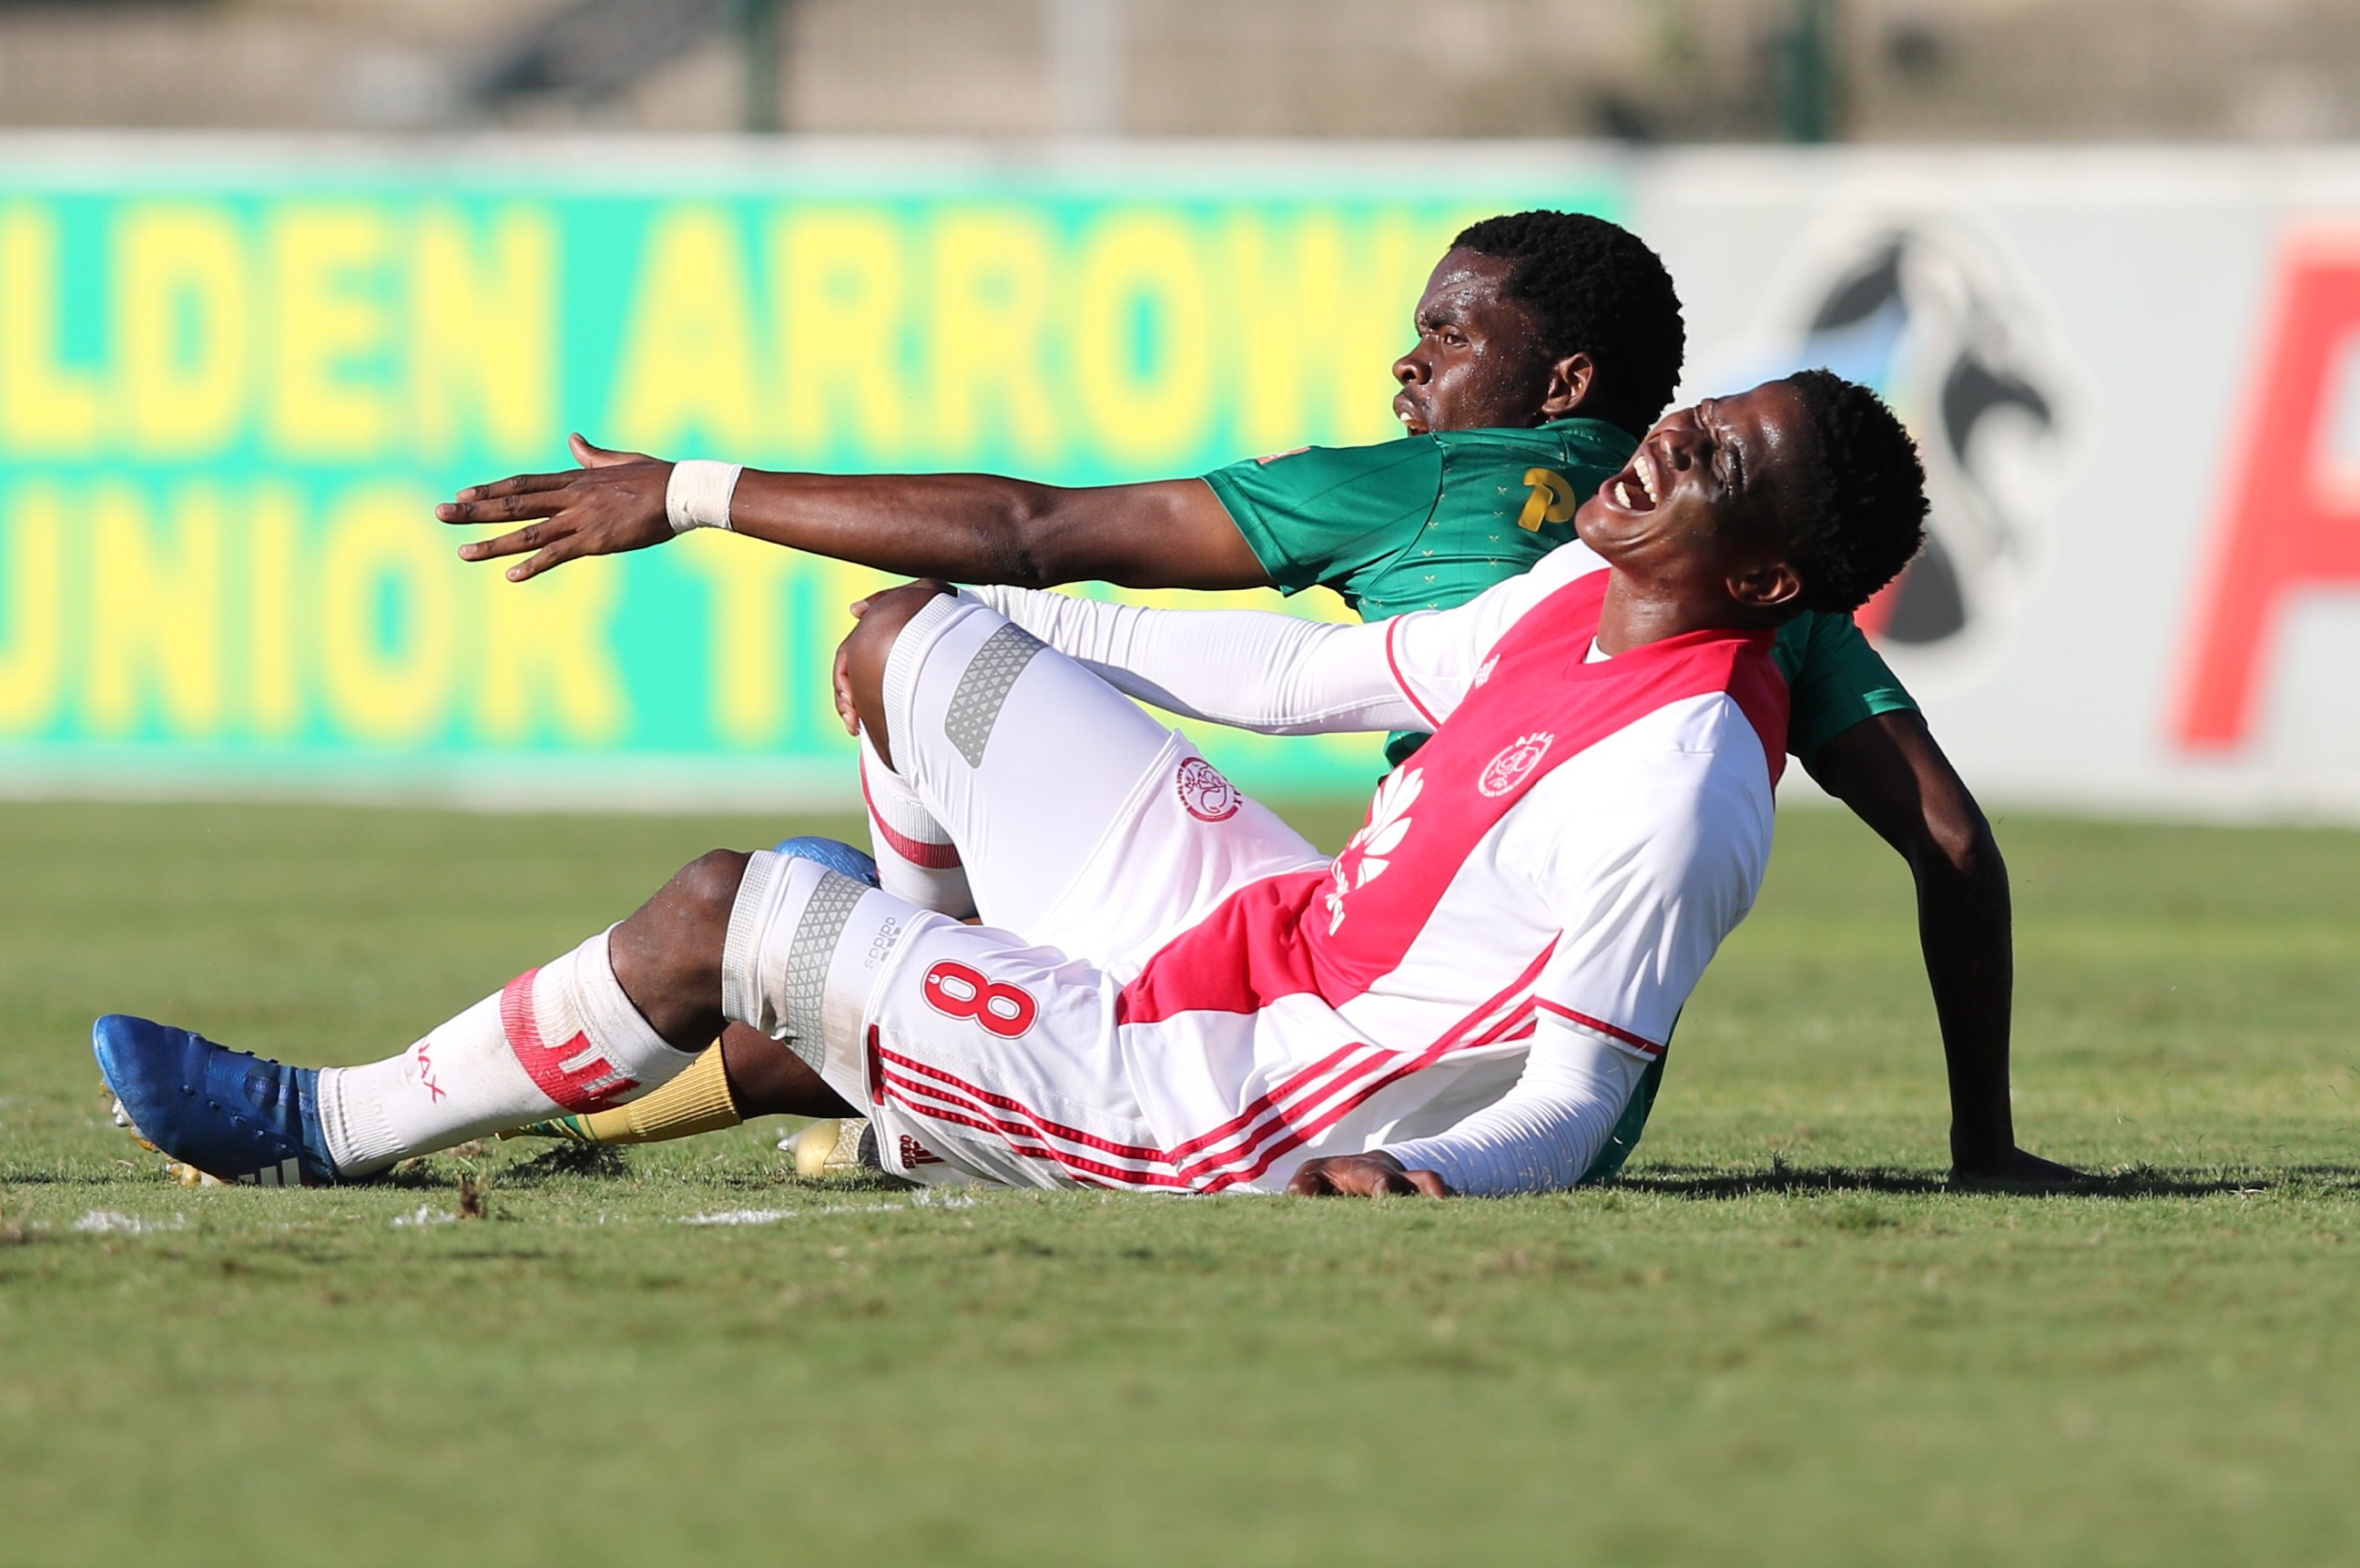 DURBAN, SOUTH AFRICA - APRIL 15: Danny Phiri of Golden Arrows fouls Ndiviwe Mdabuka during the Absa Premiership match between Golden Arrows and Ajax Cape Town at Prince Magogo Stadium on April 15, 2017 in Durban, South Africa. (Photo by Photo by Anesh Debiky/Gallo Images)